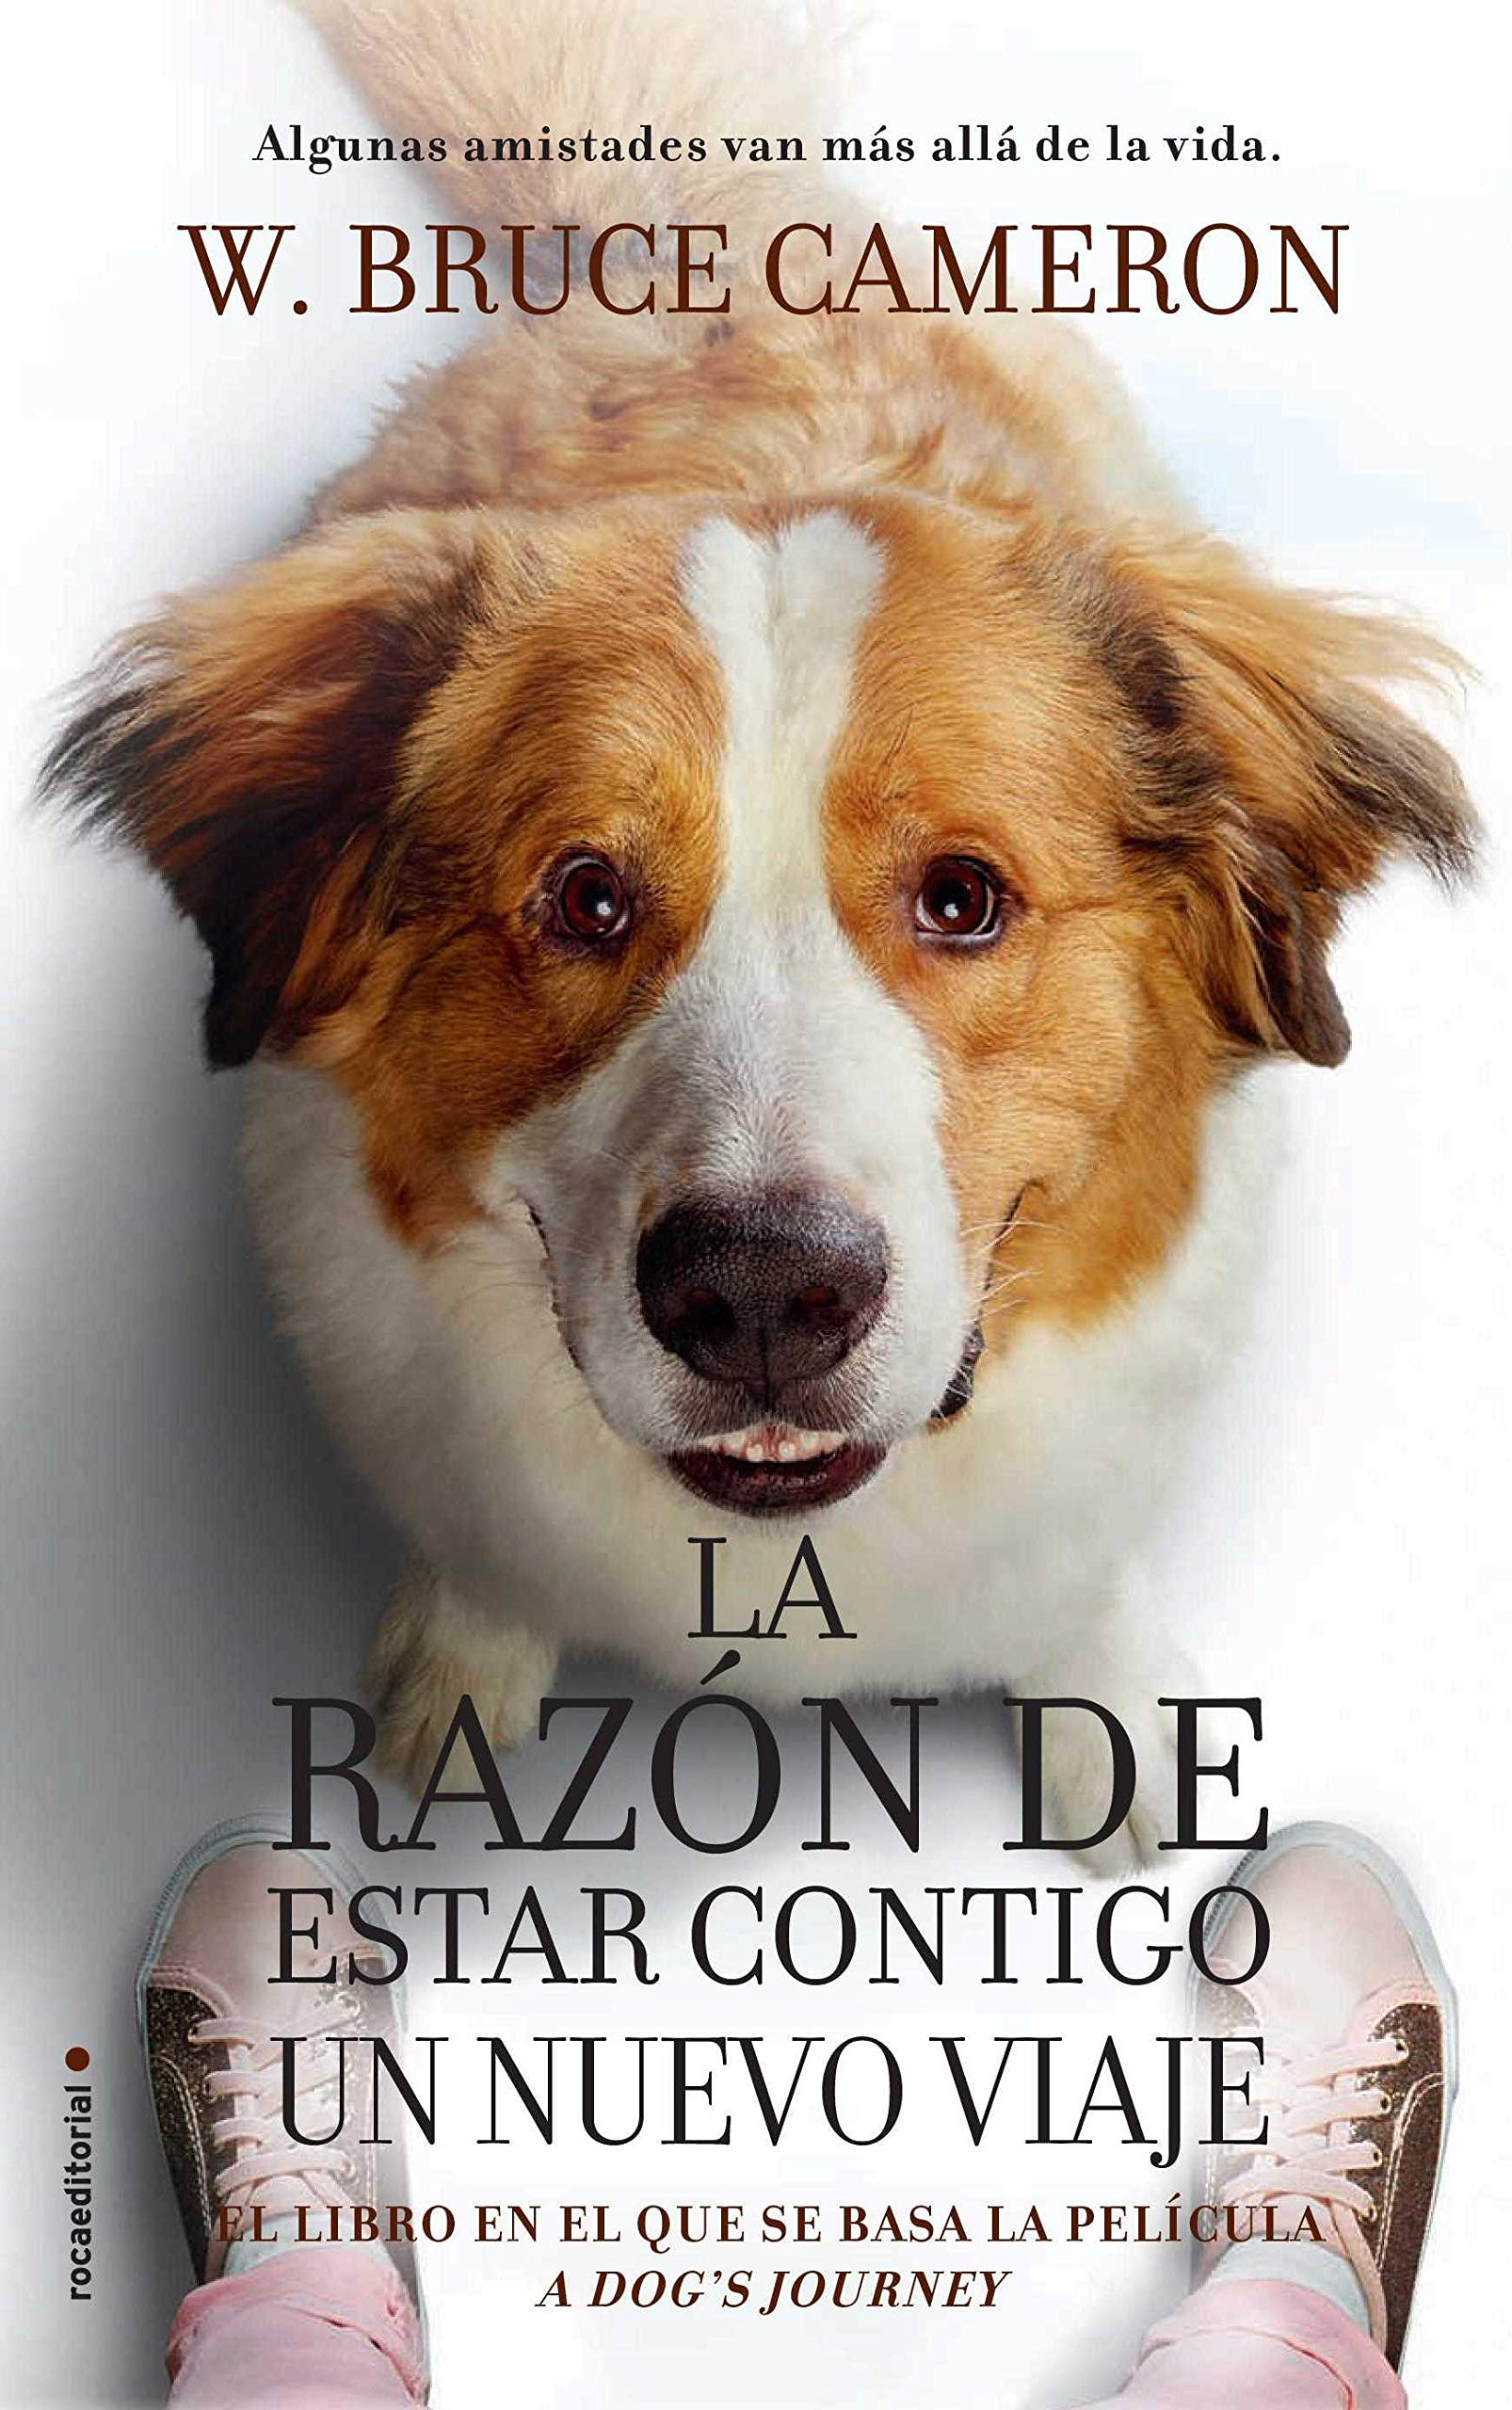 Razon de estar contigo, La. Un nuevo viaje (movie-tie-in) (Spanish  Edition): W. Bruce Cameron: 9788417805081: Amazon.com: Books